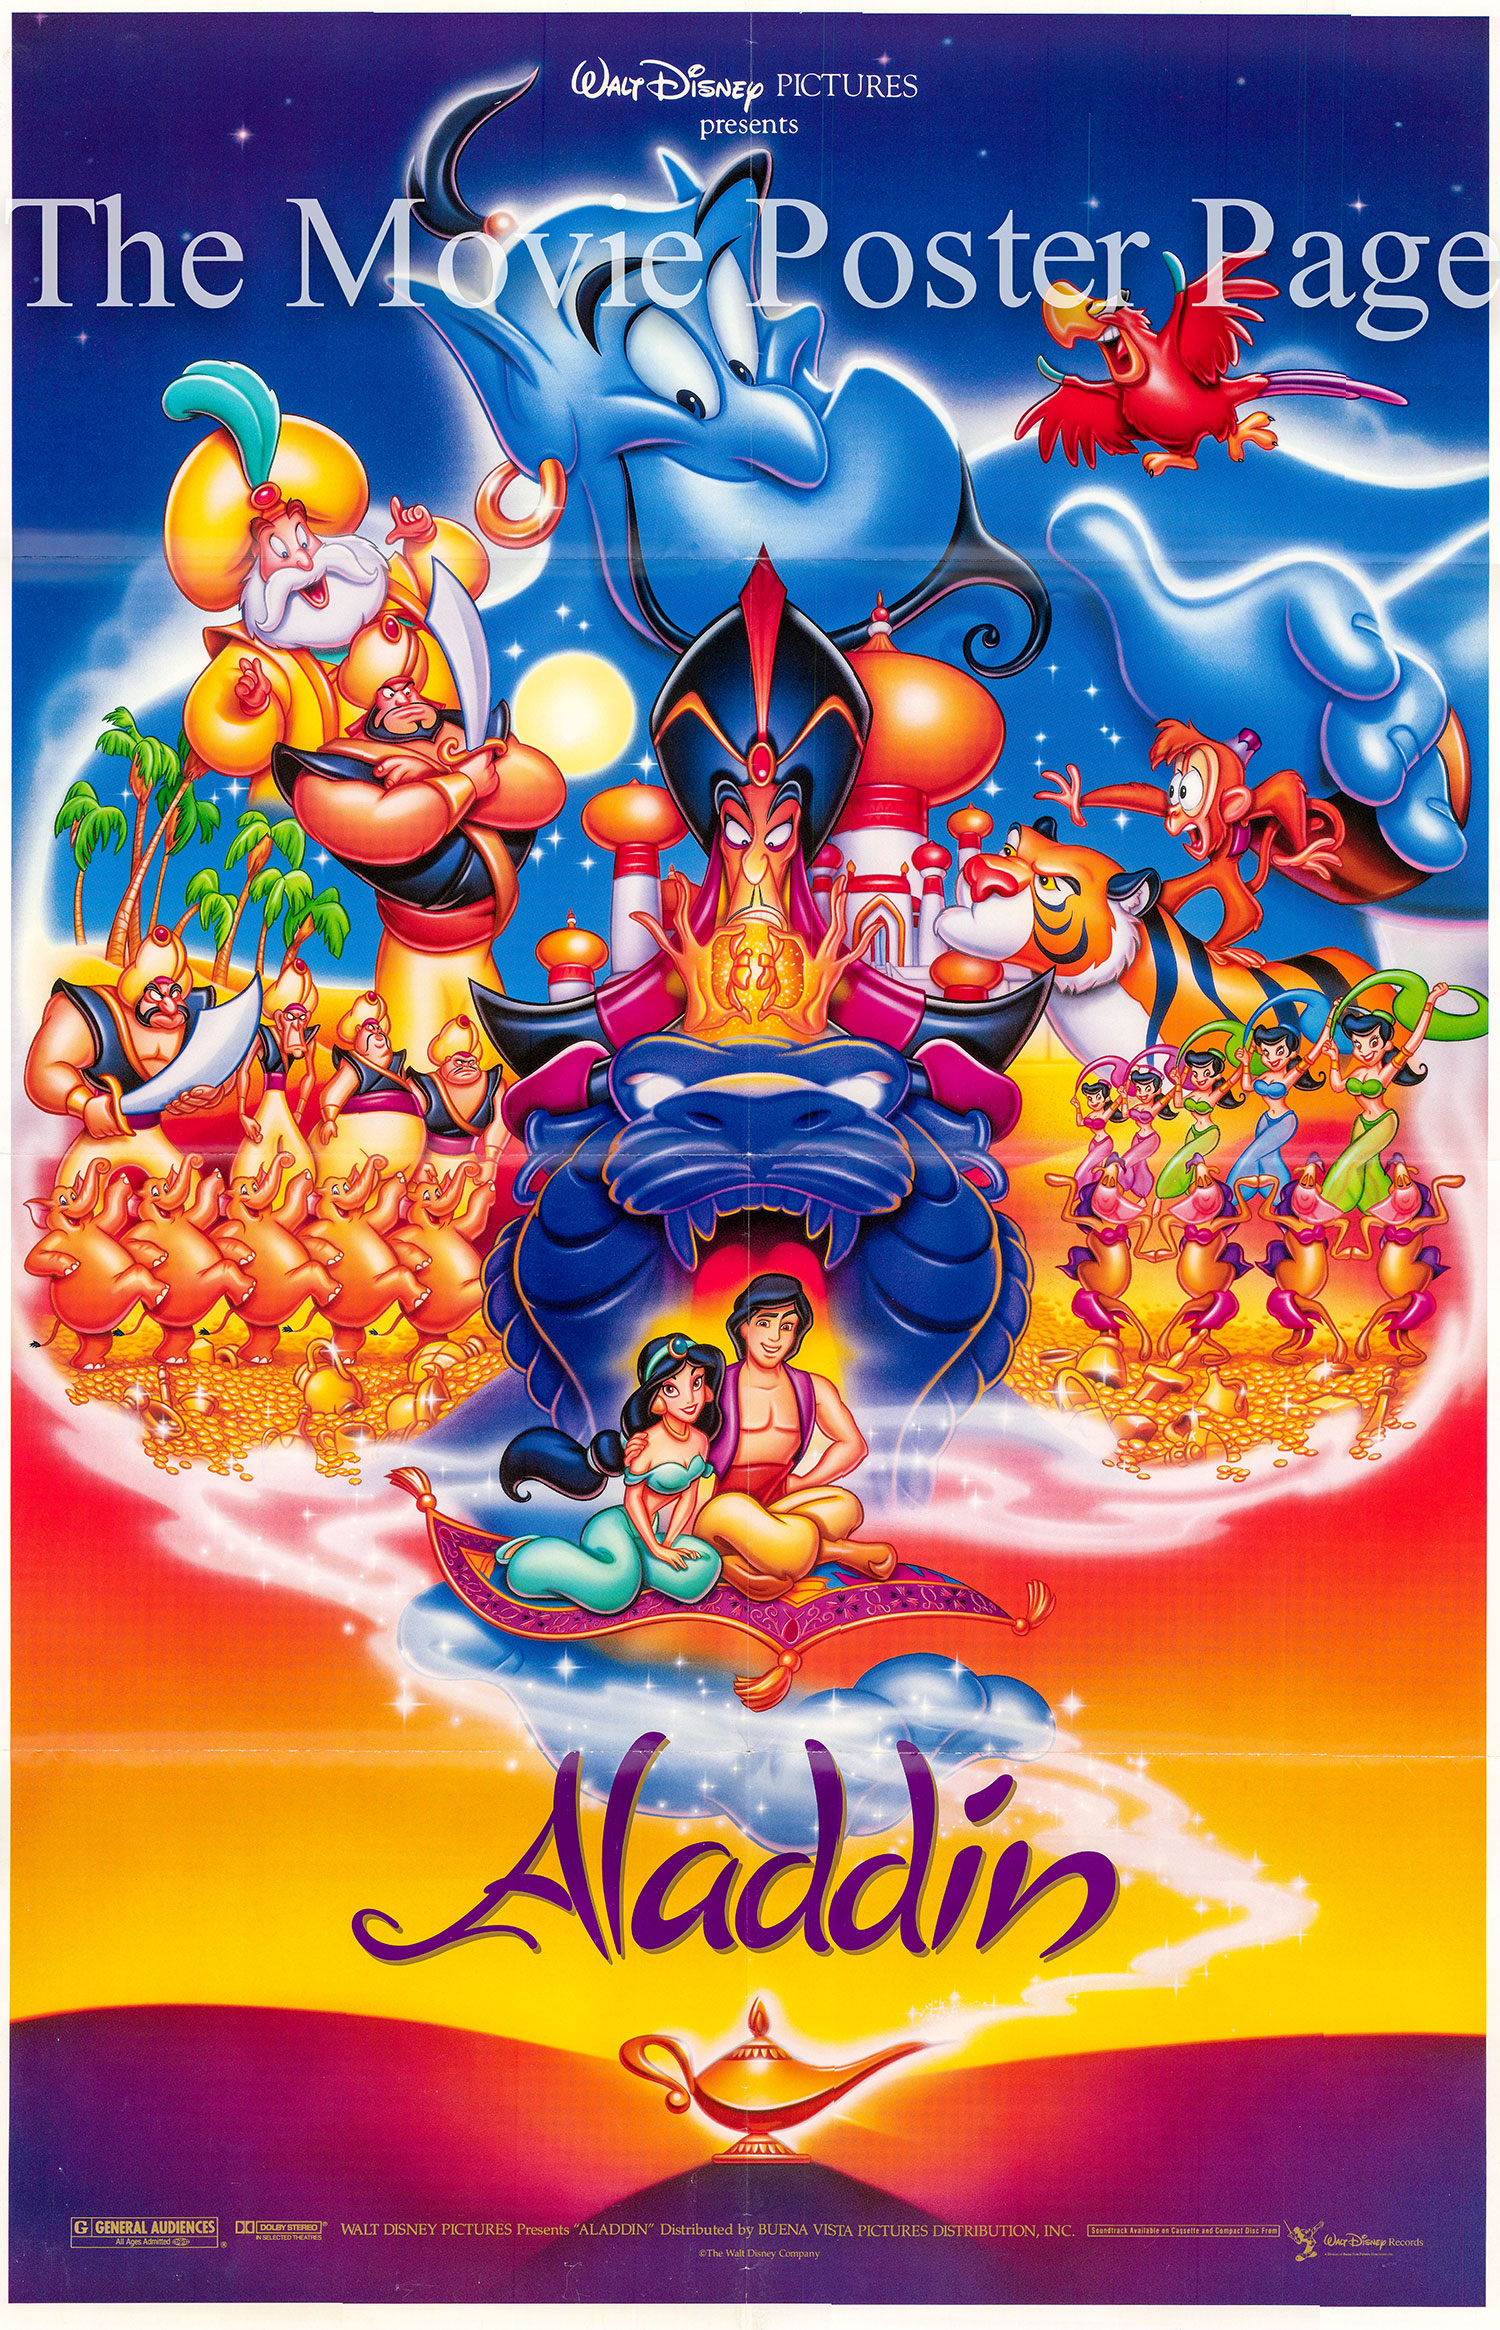 Pictured is a US promotional poster for the 1993 Ron Clements and John Musker film Aladdin starring Robin Williams as the voice of the Genie.